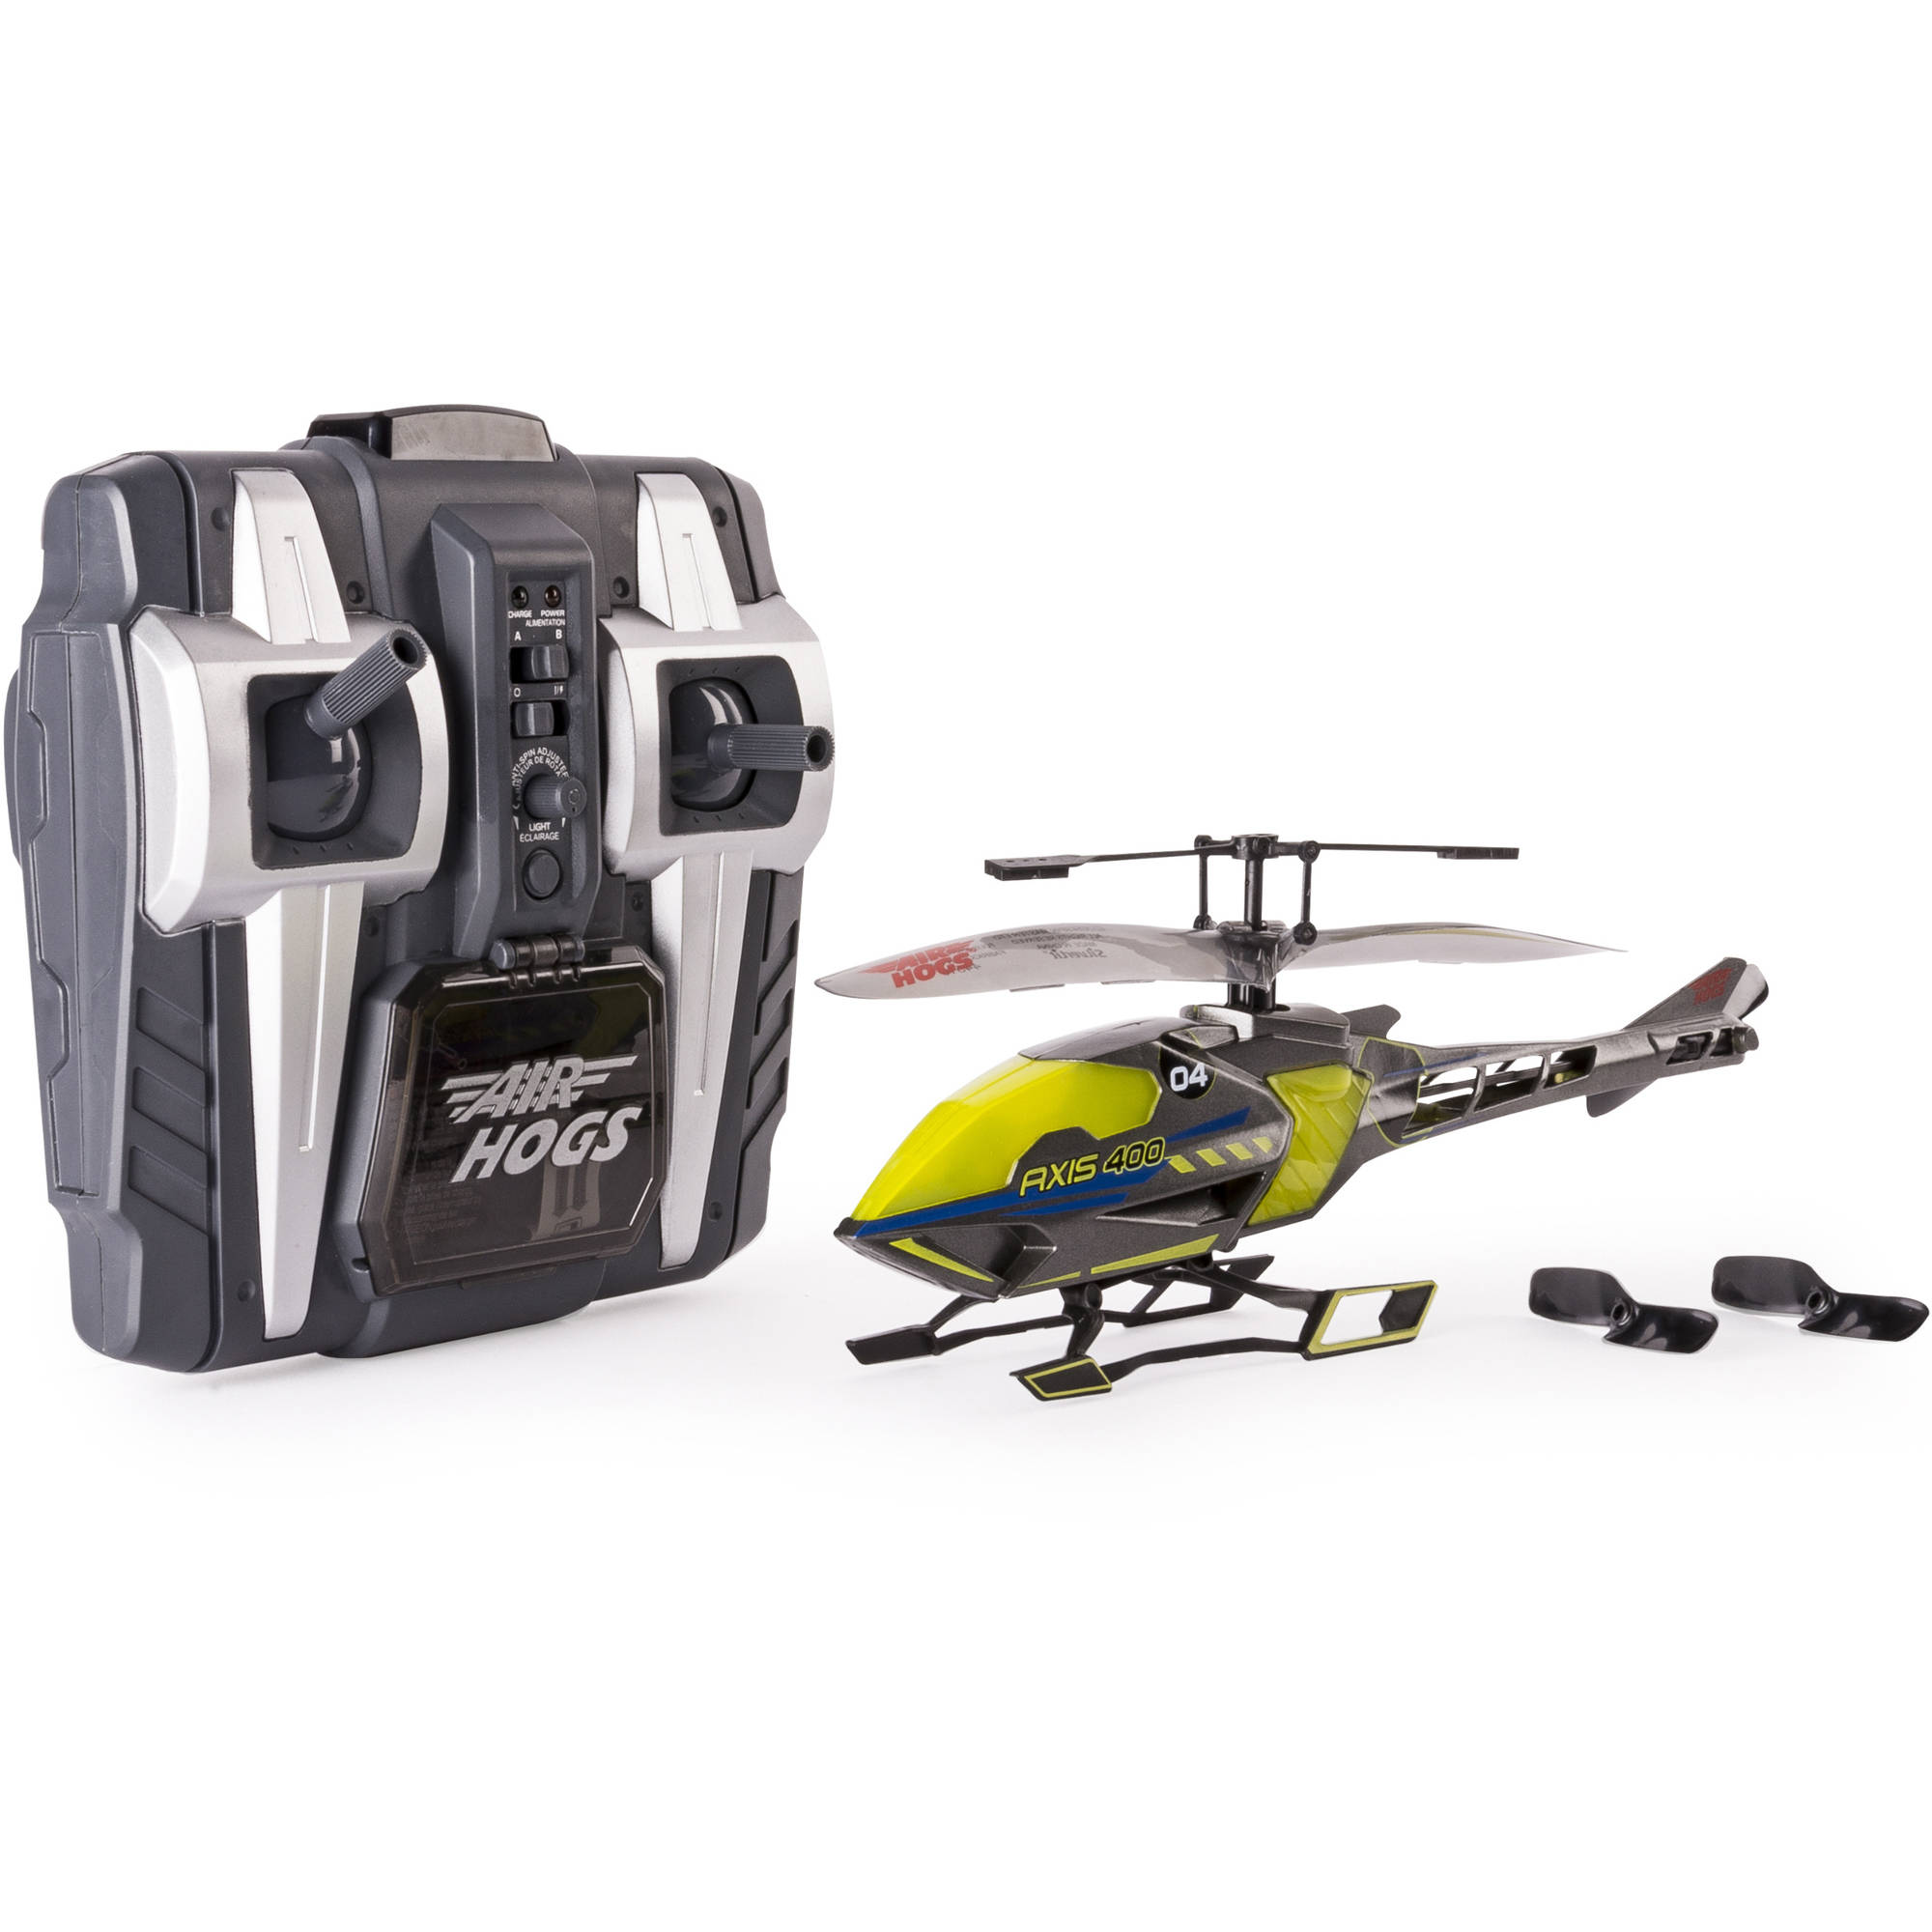 Air Hogs Axis 400x RC Helicopter, Yellow by Spin Master Ltd